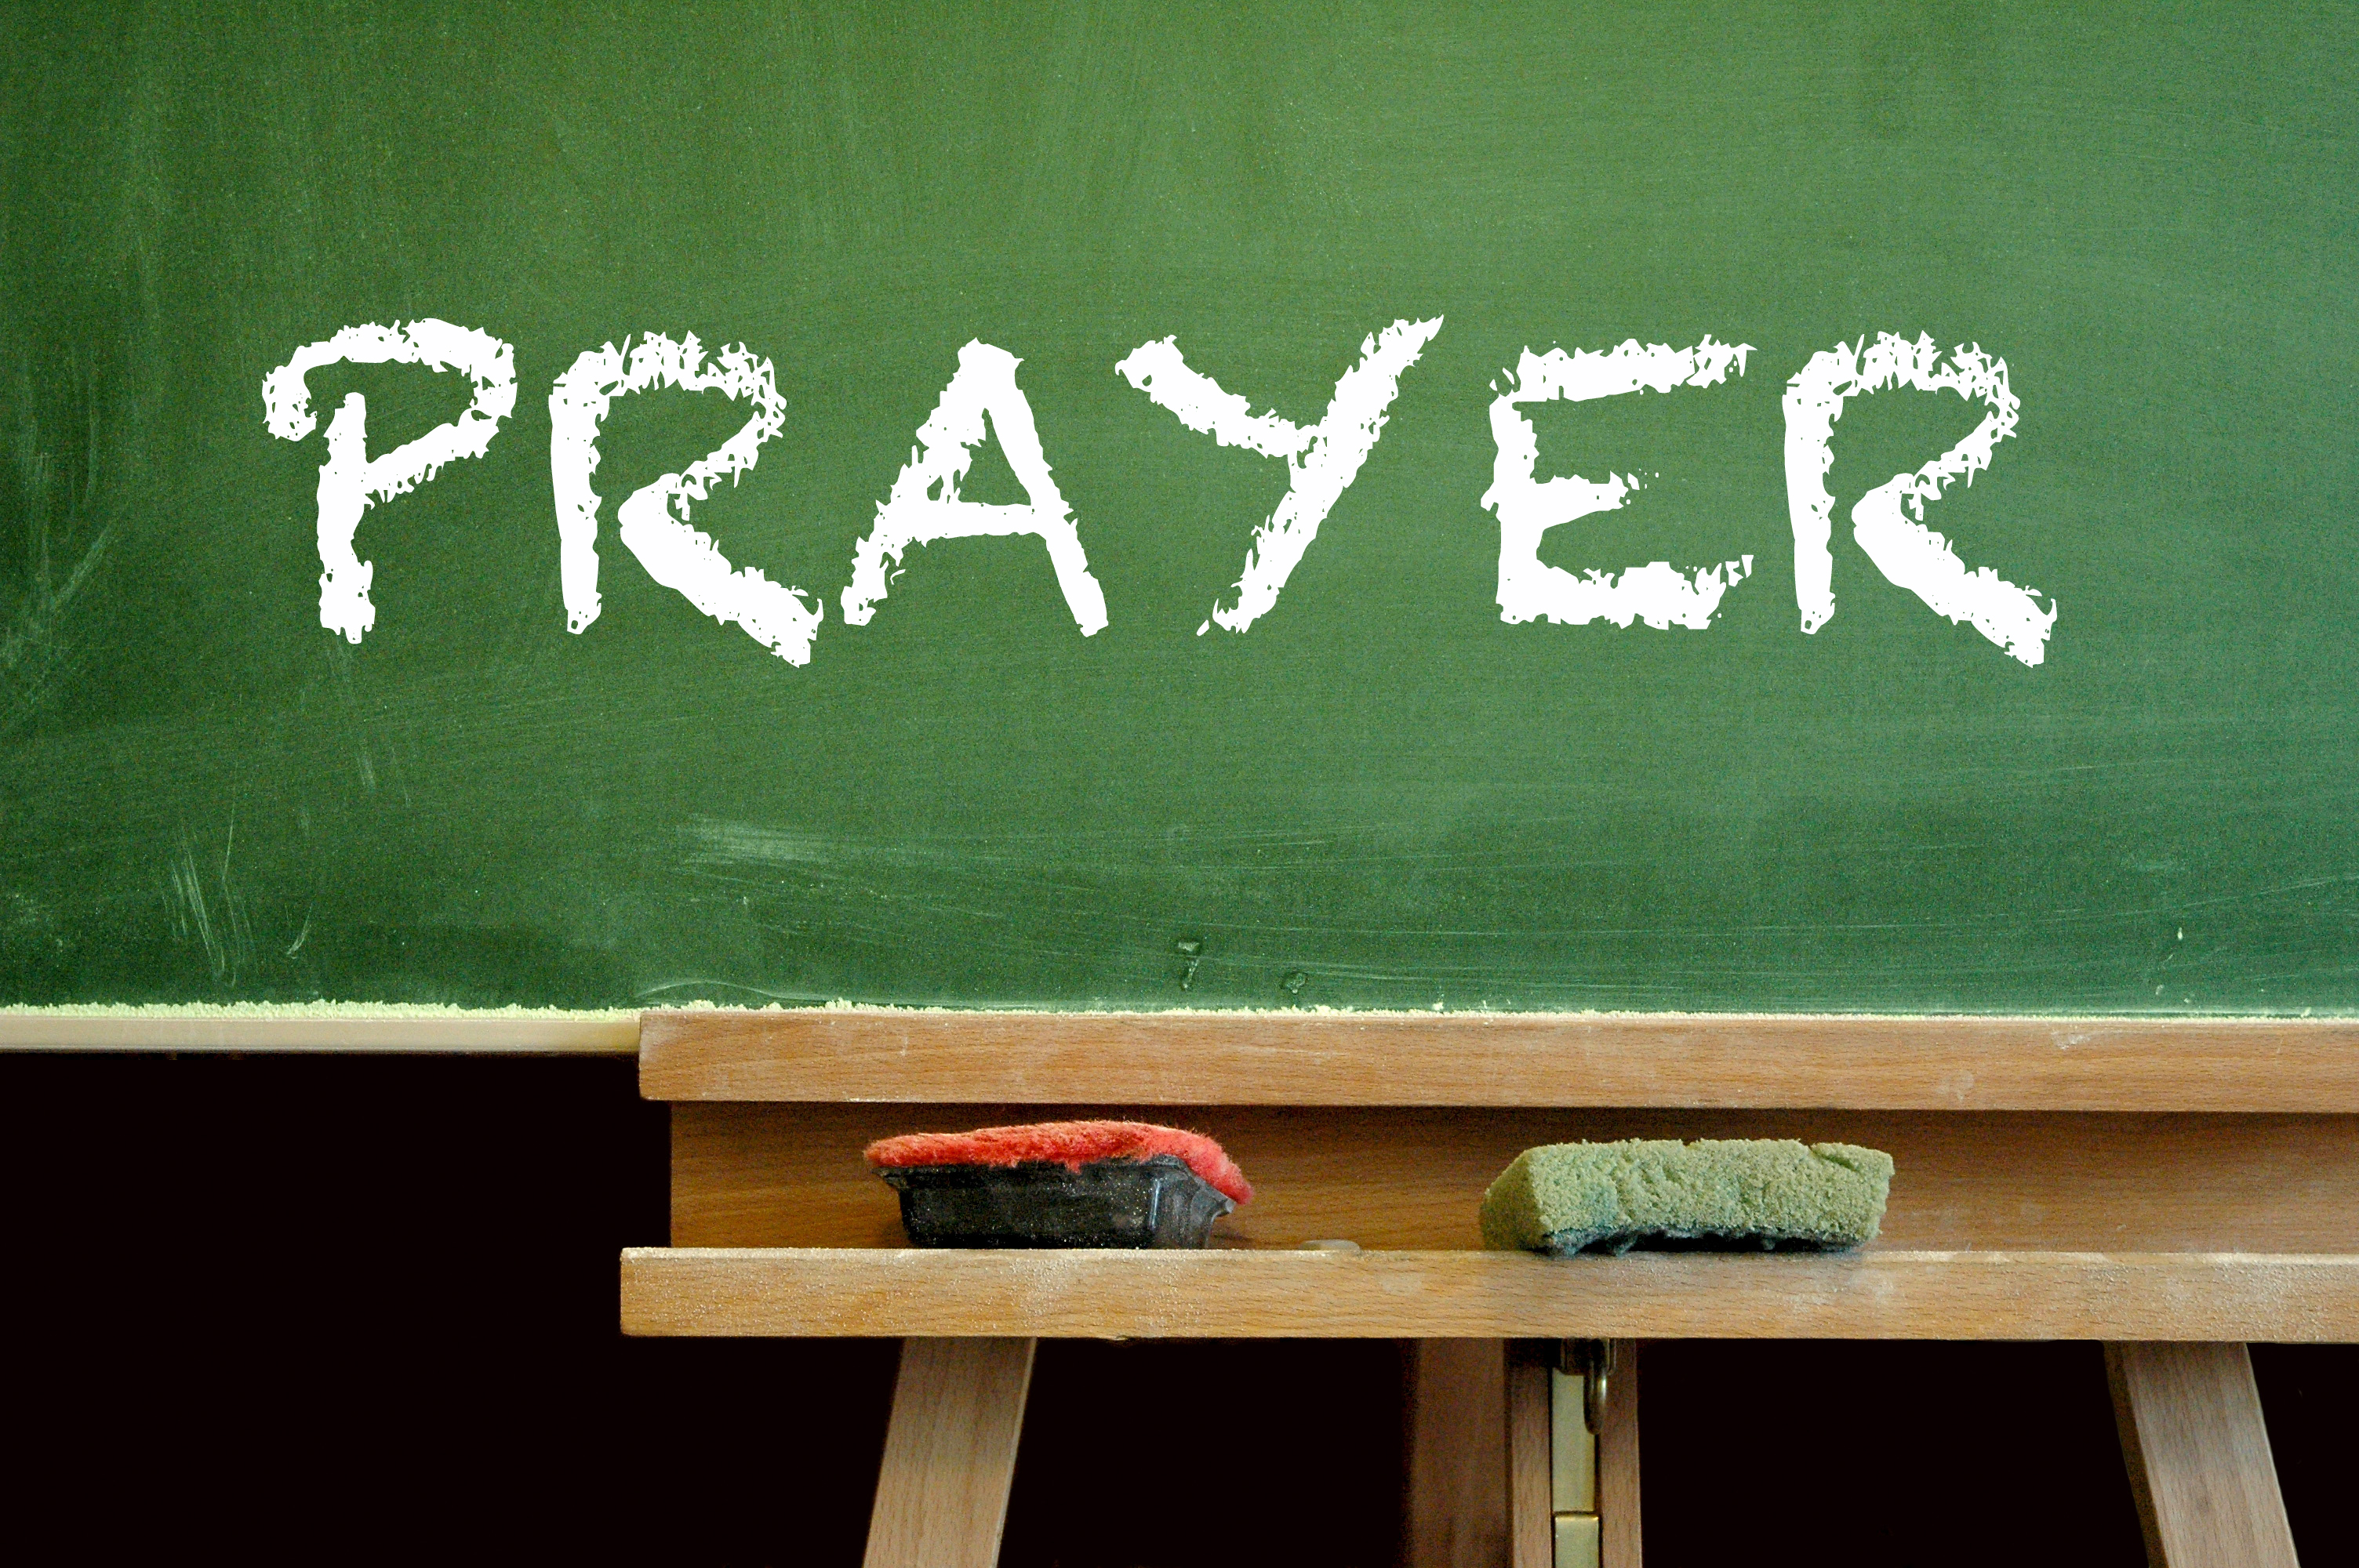 prayer in public schools should be constitutional All children have the right to pray voluntary just not through the public school system prayer should  prayer into public schools  prayer constitutional.